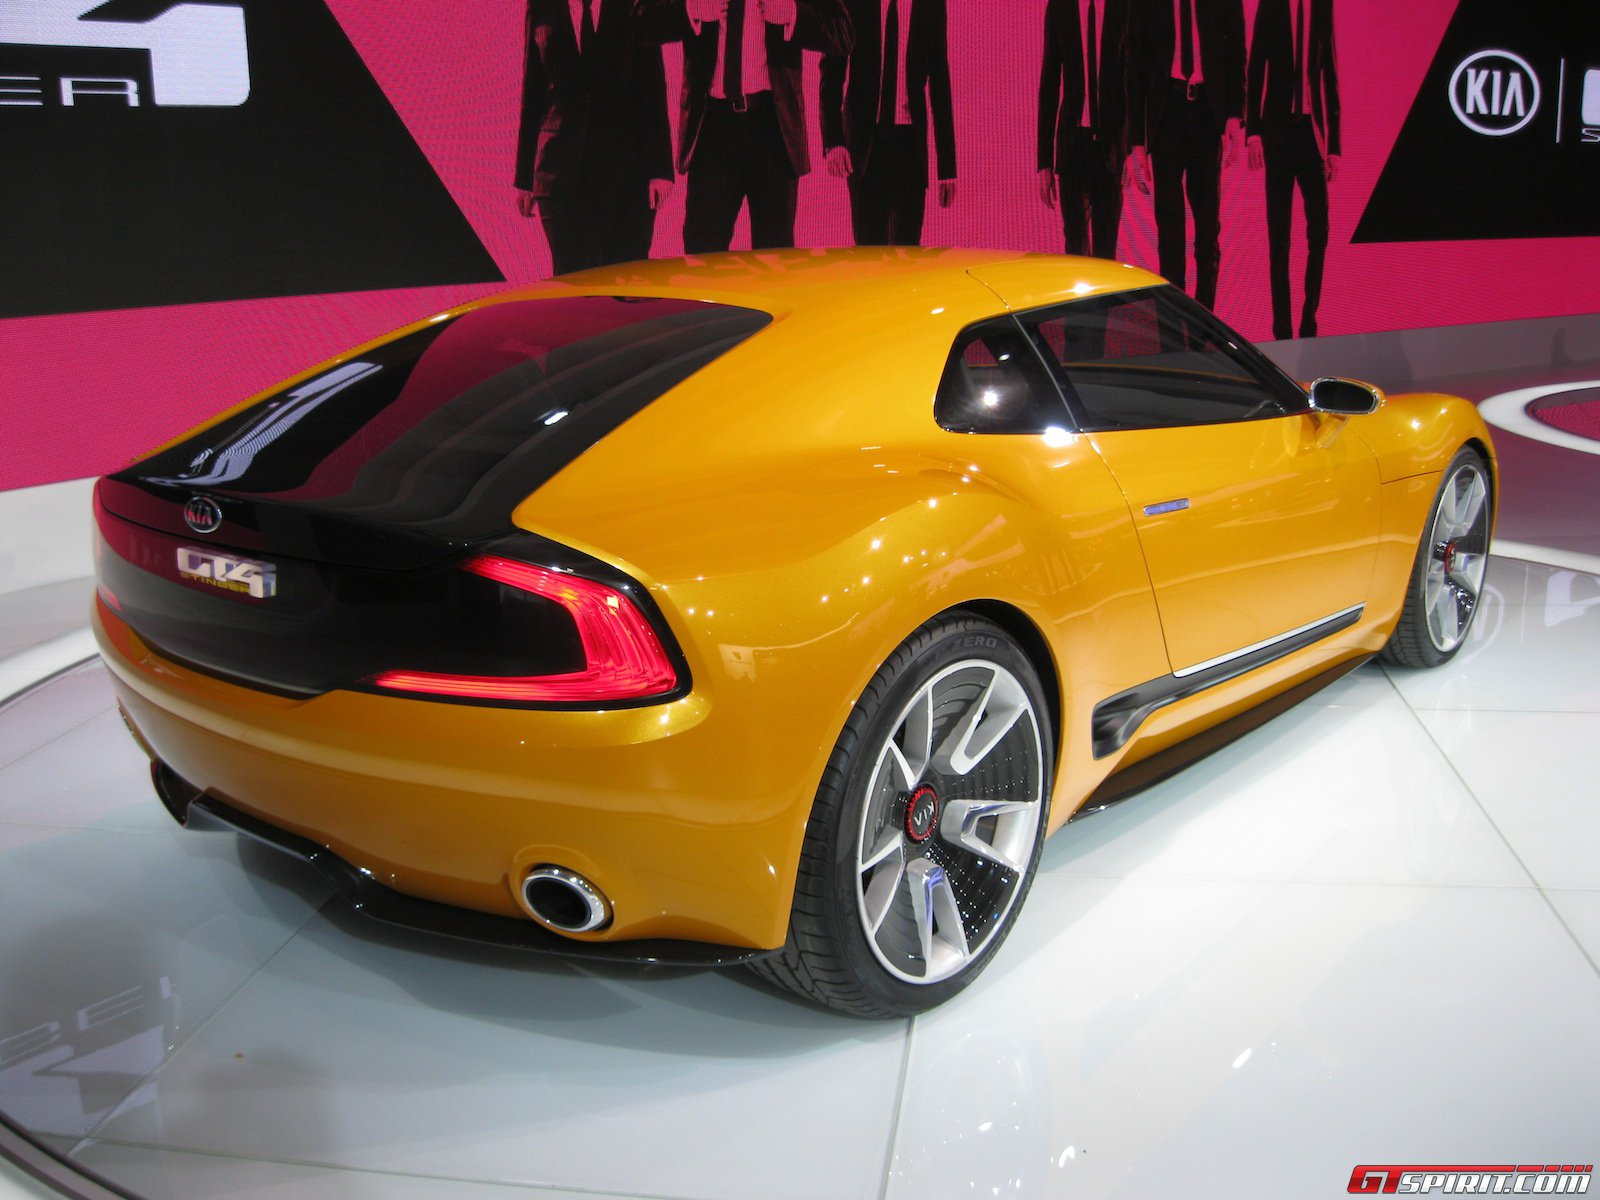 High Resolution Wallpaper | 2014 Kia GT4 Stinger Concept  1600x1200 px